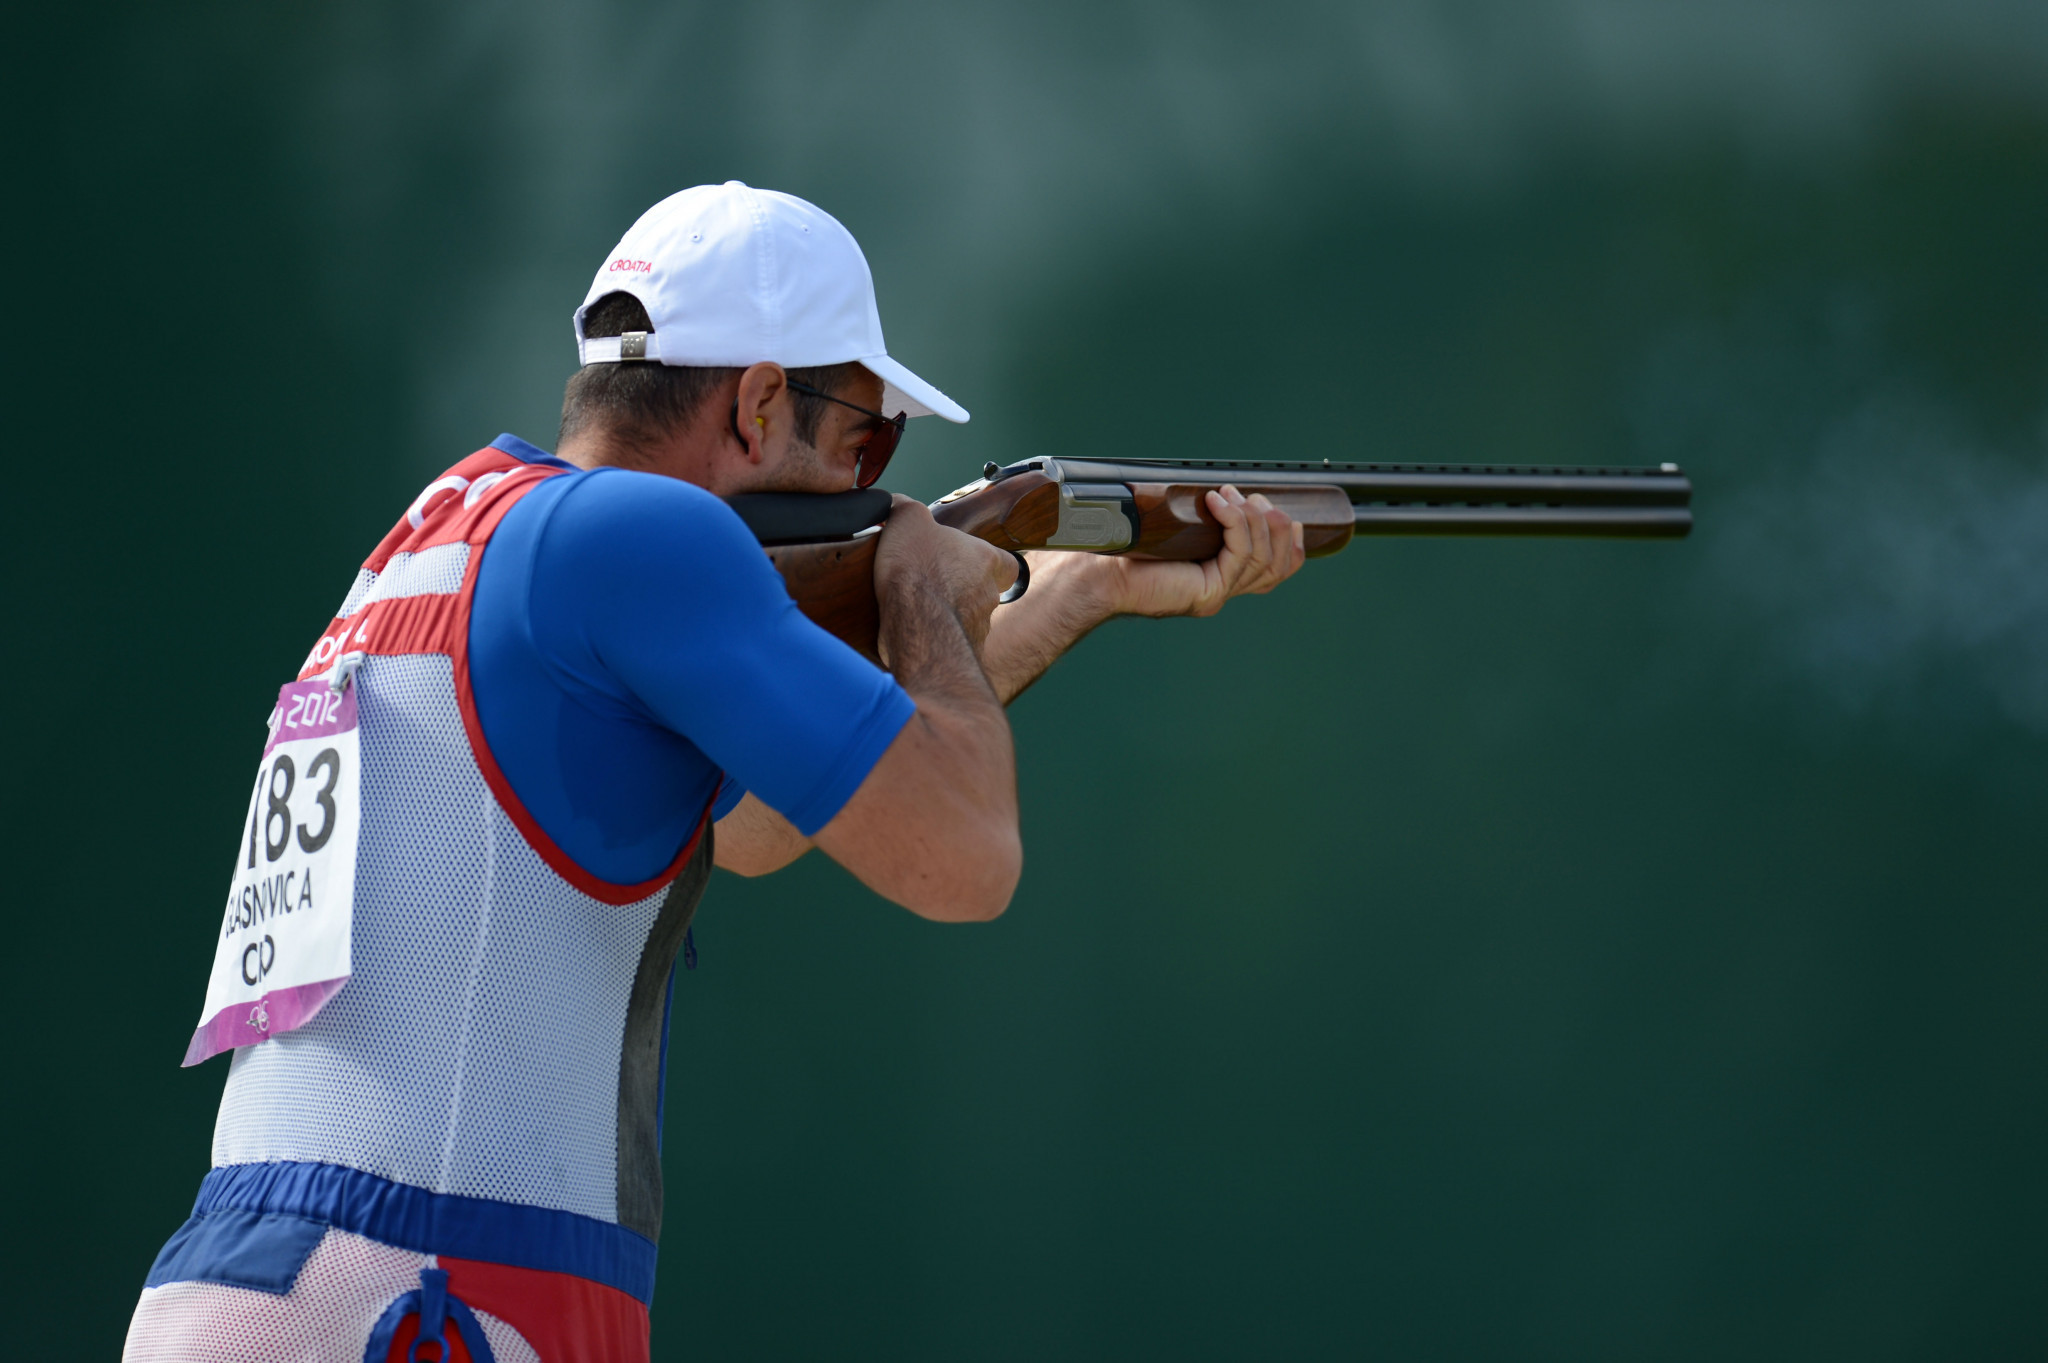 Glasnović wins first men's trap final at ISSF World Cup in Nicosia